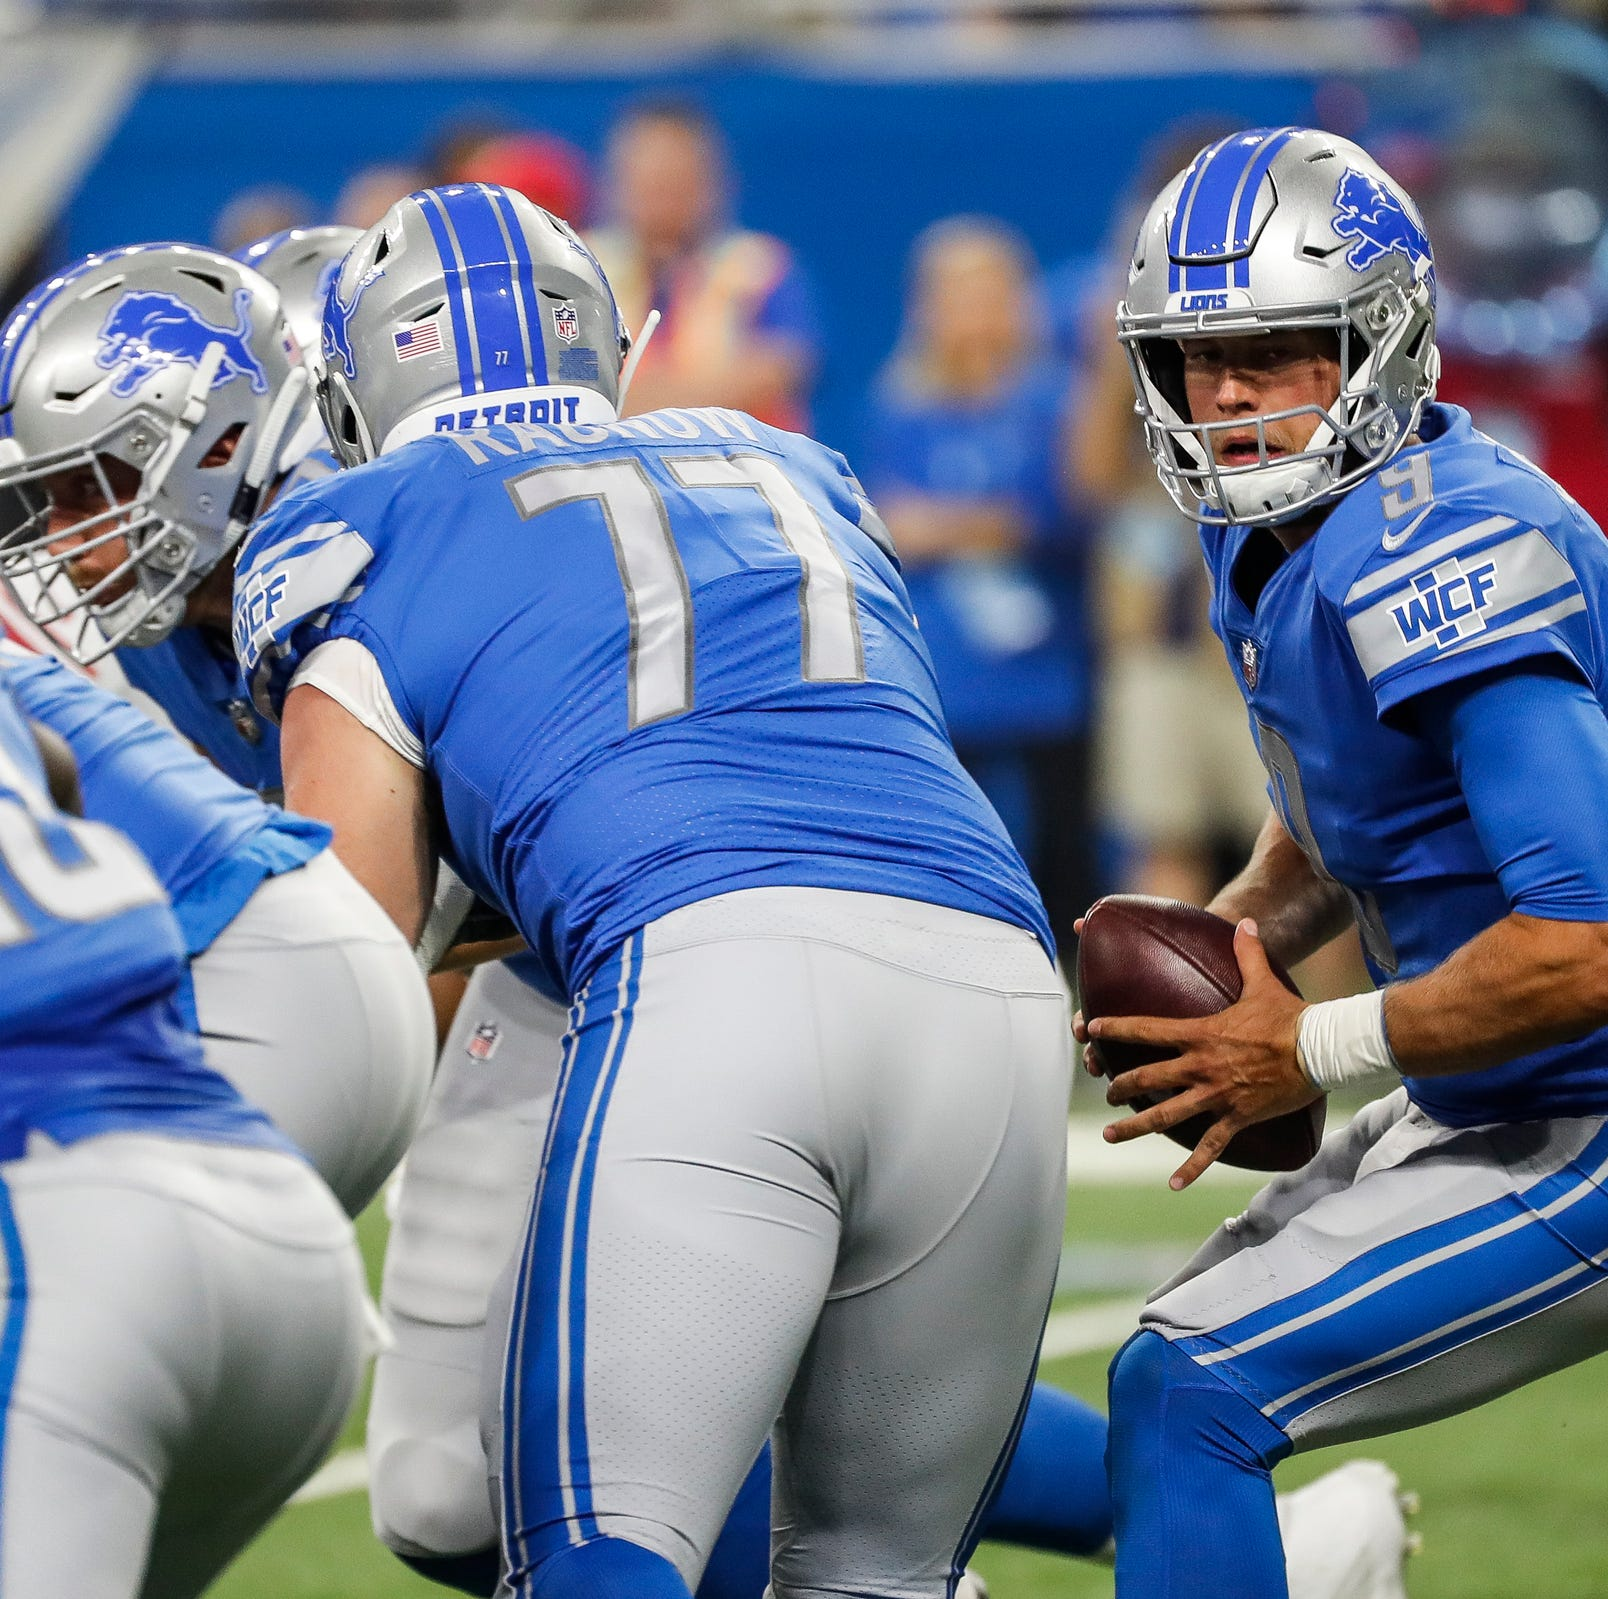 Detroit Lions look sloppy in 30-17 preseason loss to New York Giants